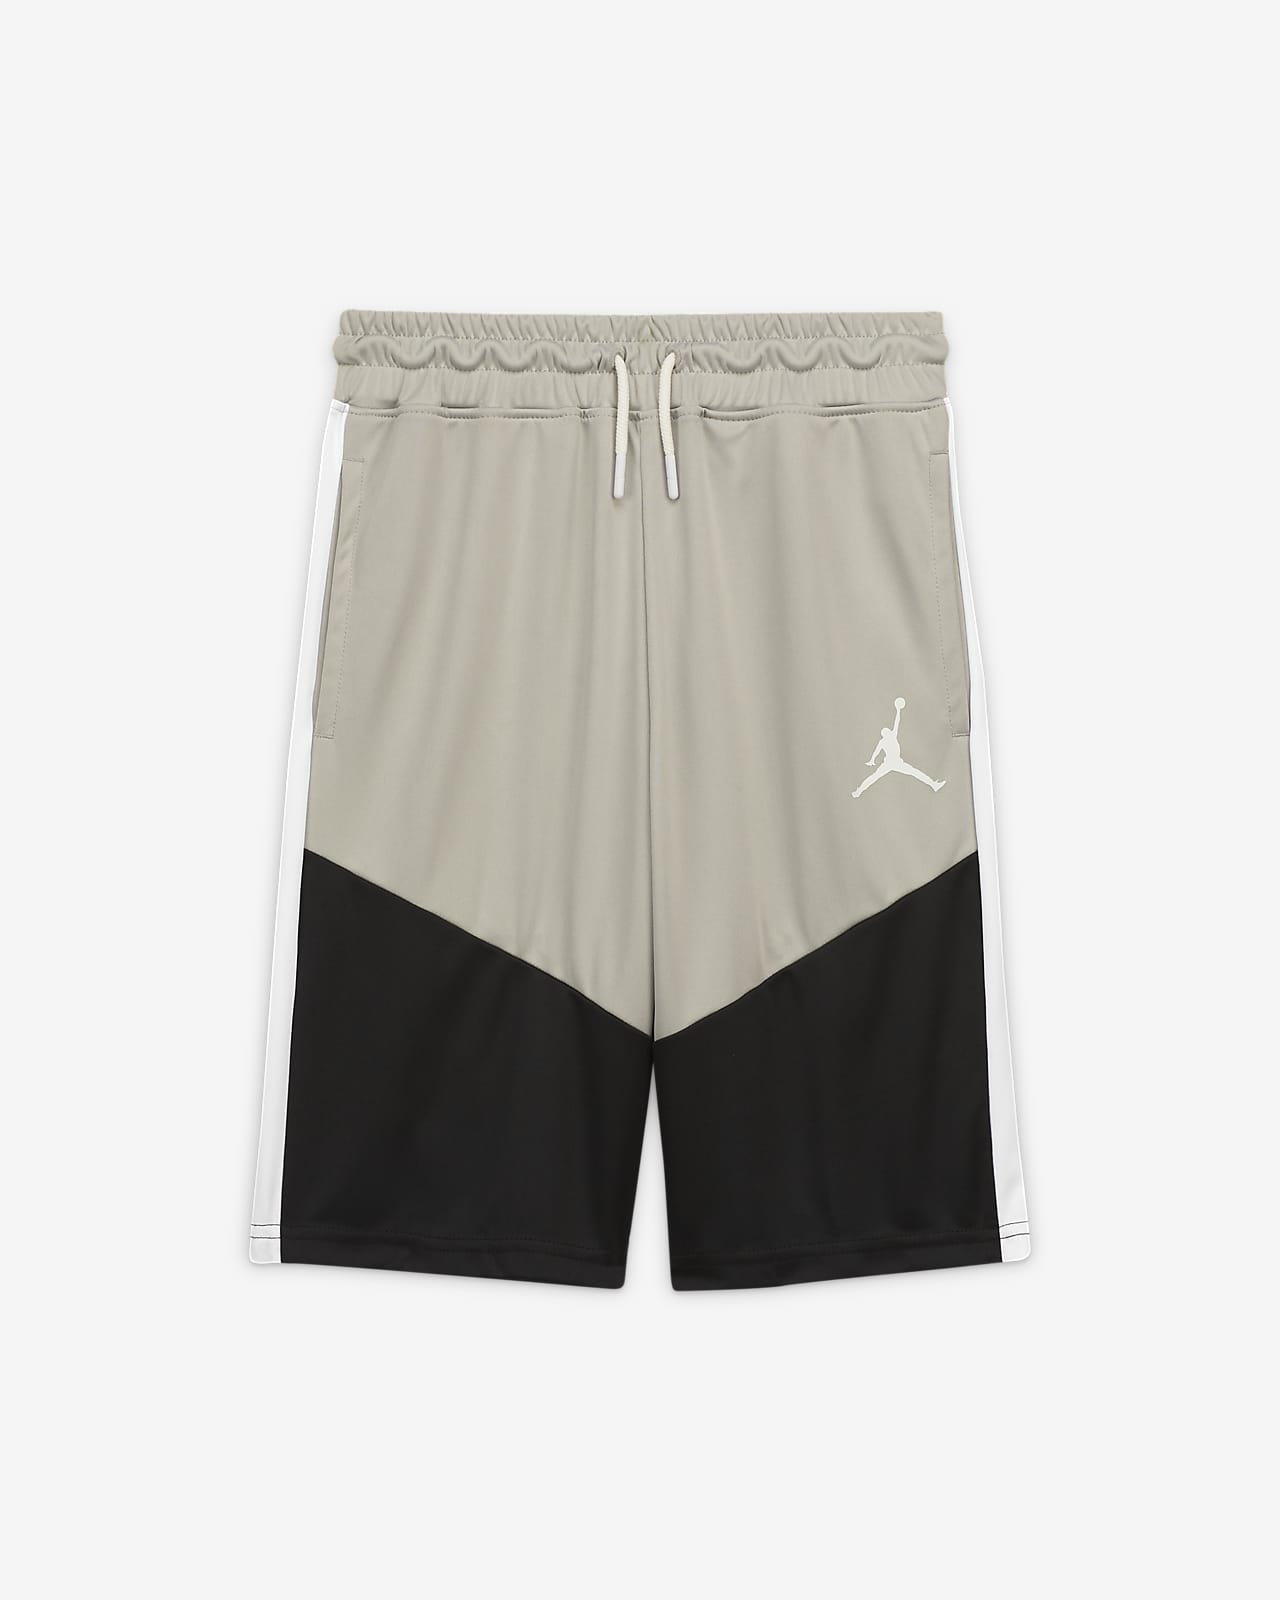 Jordan Dri-FIT Big Kids' (Boys') Basketball Shorts